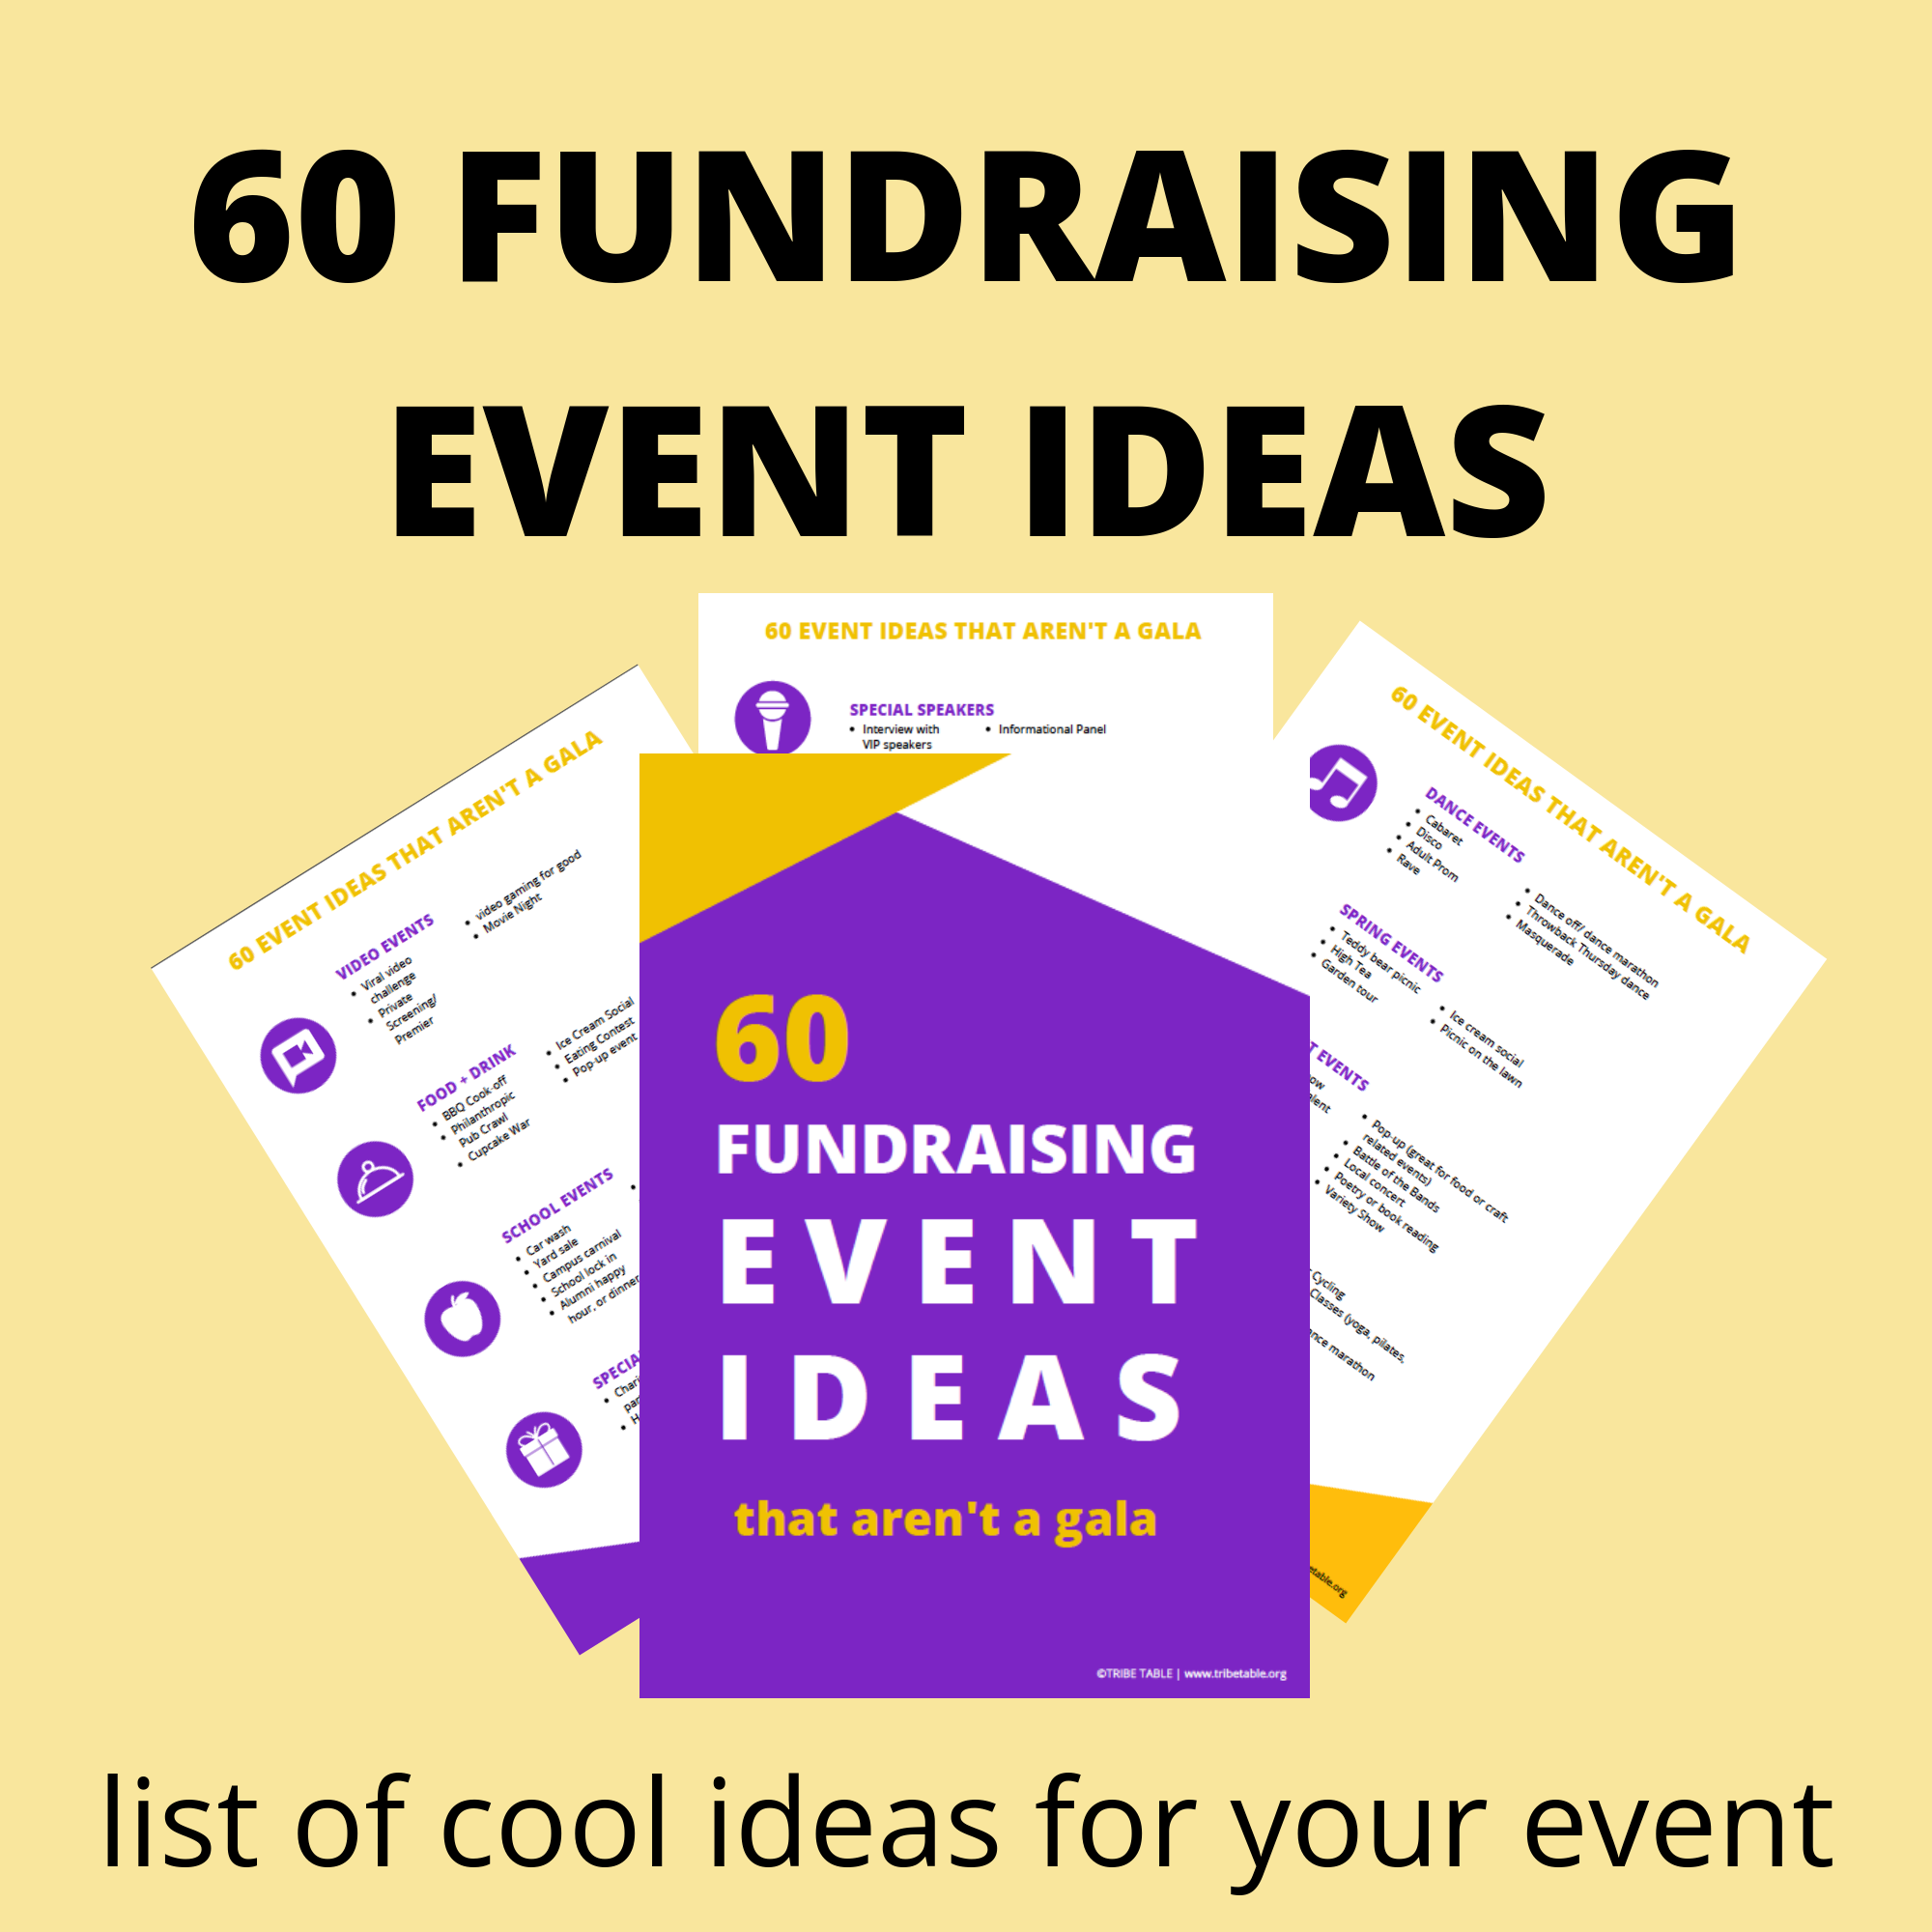 60 fundraising event ideas.png